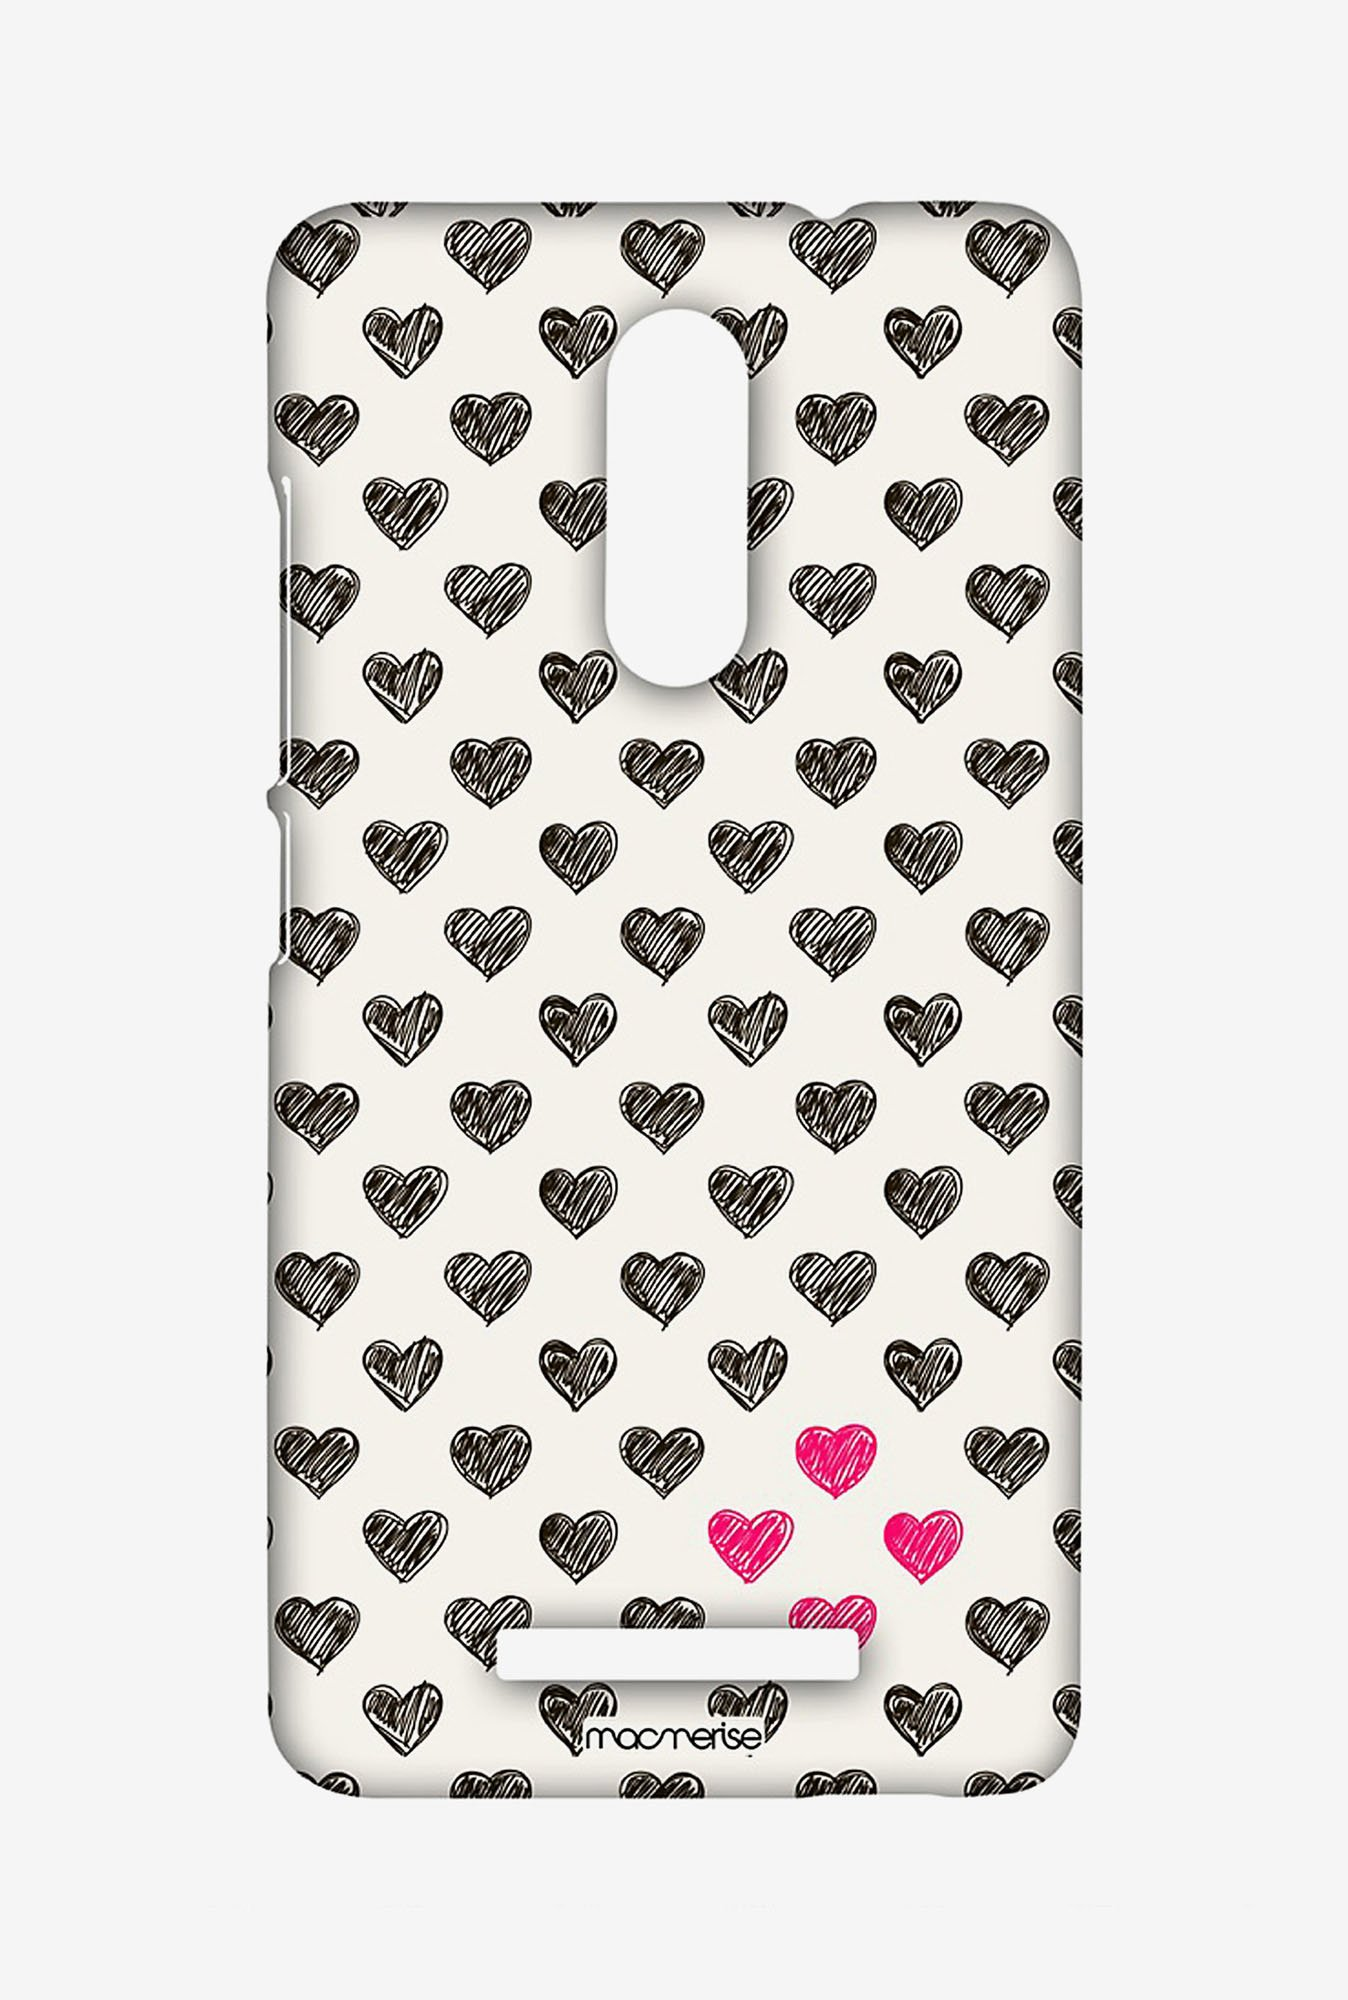 Macmerise XACN3SMI0884 Sketchy Hearts Sublime Case for Xiaomi Redmi Note 3